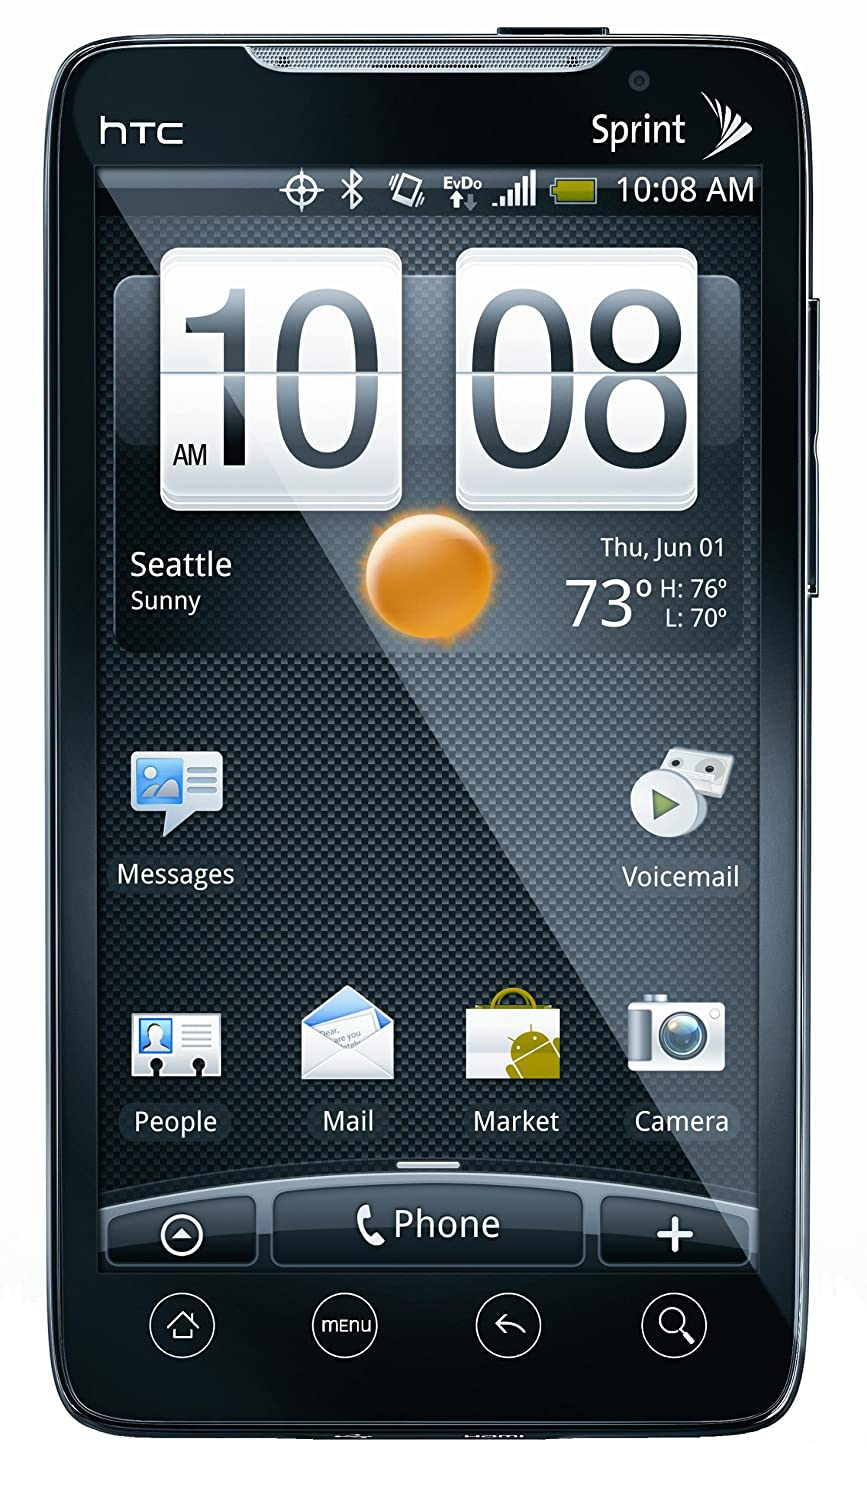 Camera Htc Qwerty Android Phones amazon com htc evo black sprint cell phones accessories